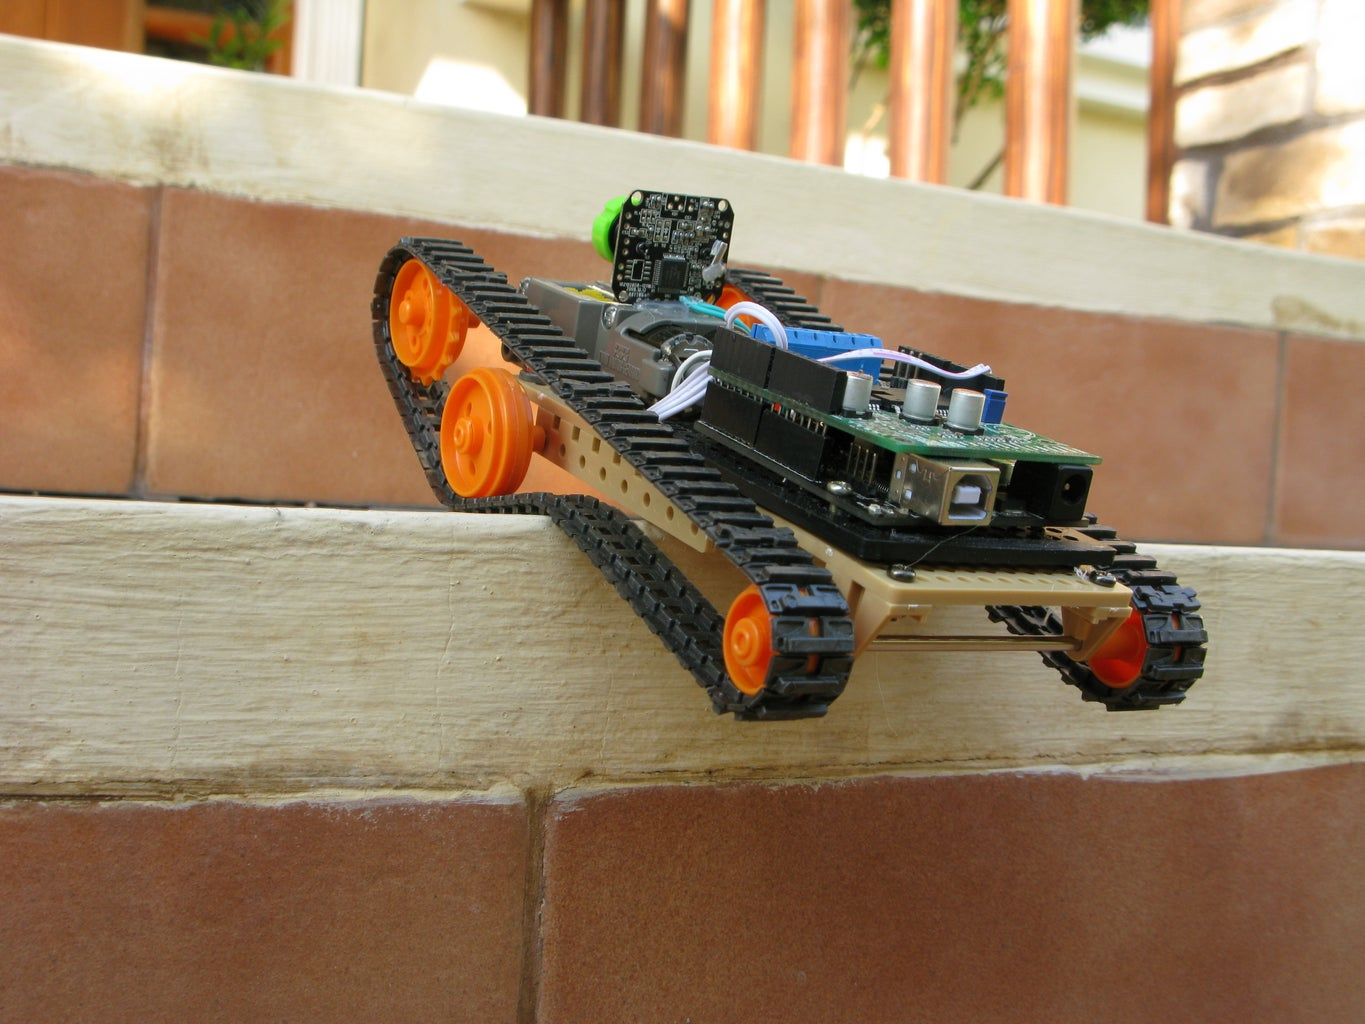 Photo Gallery - FPV Rover in Action (update: 5/10/14)